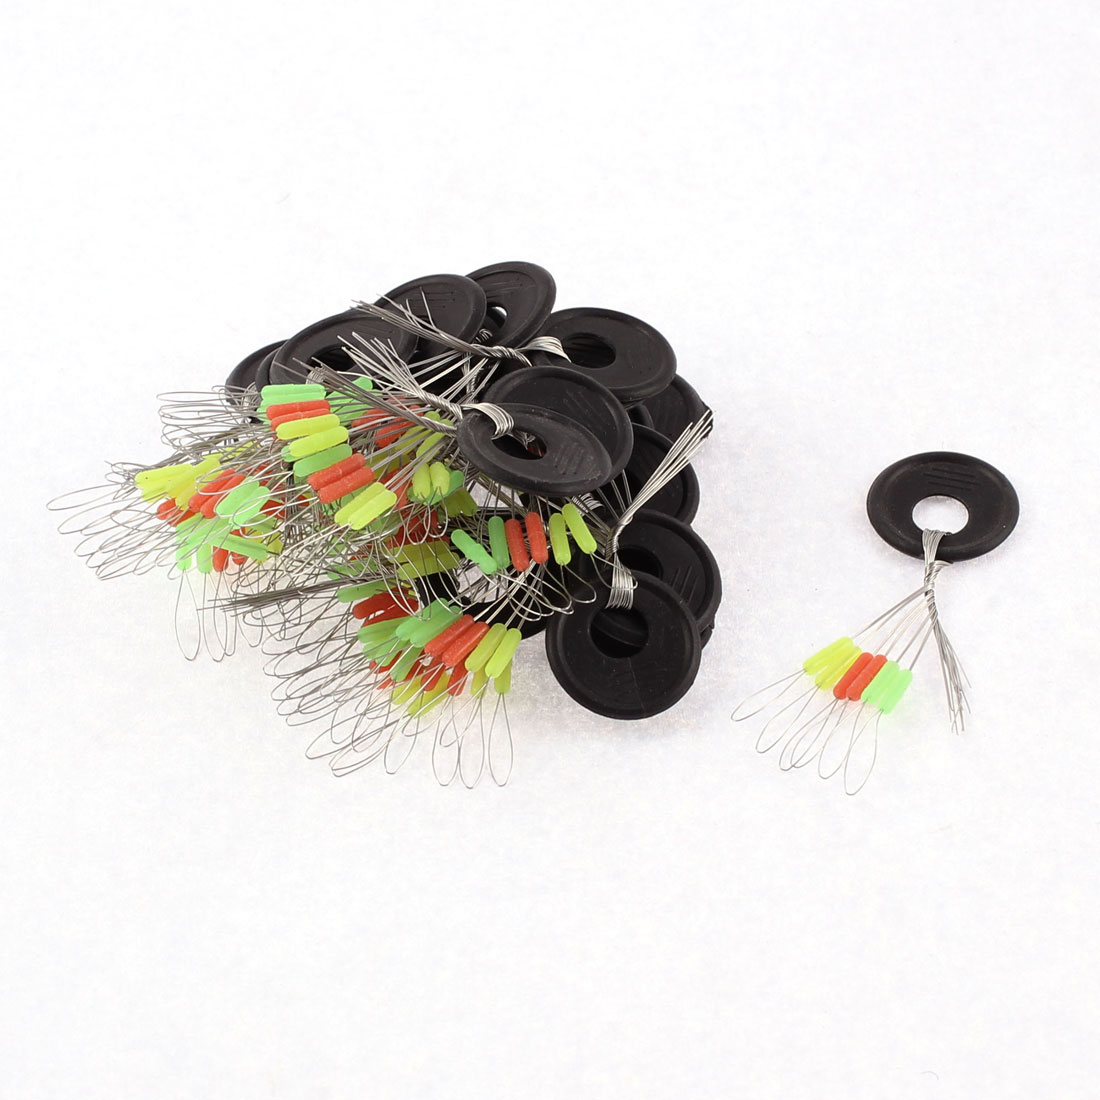 Unique Bargains 6 in 1 Rubber Multicolor Fishing Floaters Bobbers 45mm Long 25 Pcs by Unique-Bargains